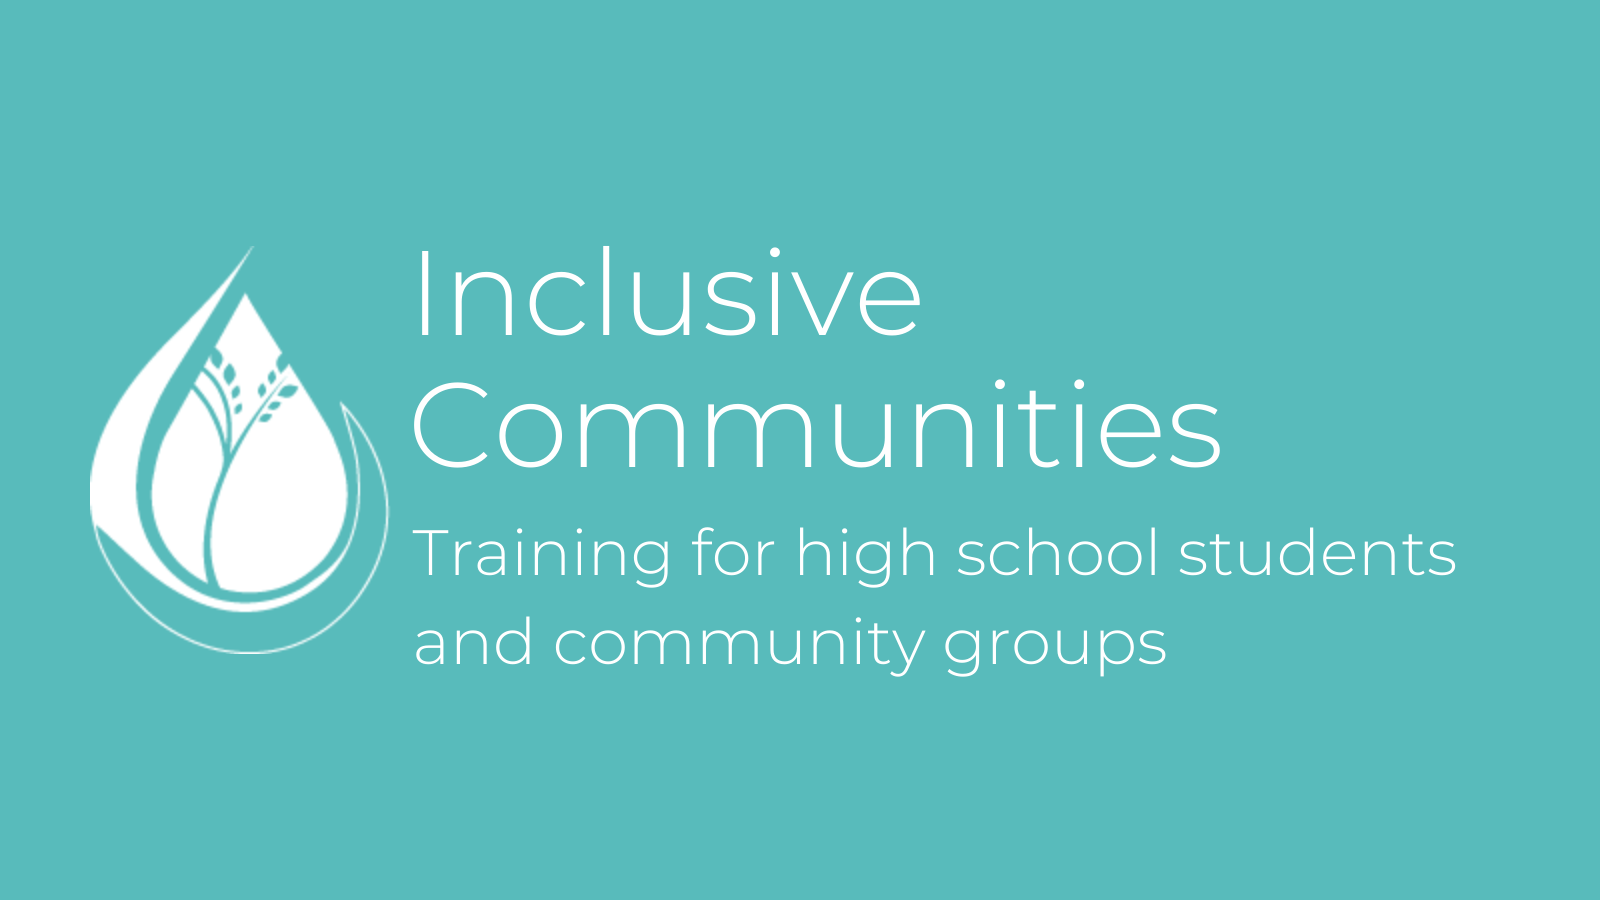 Inclusive Communities - Training for high school students and community groups